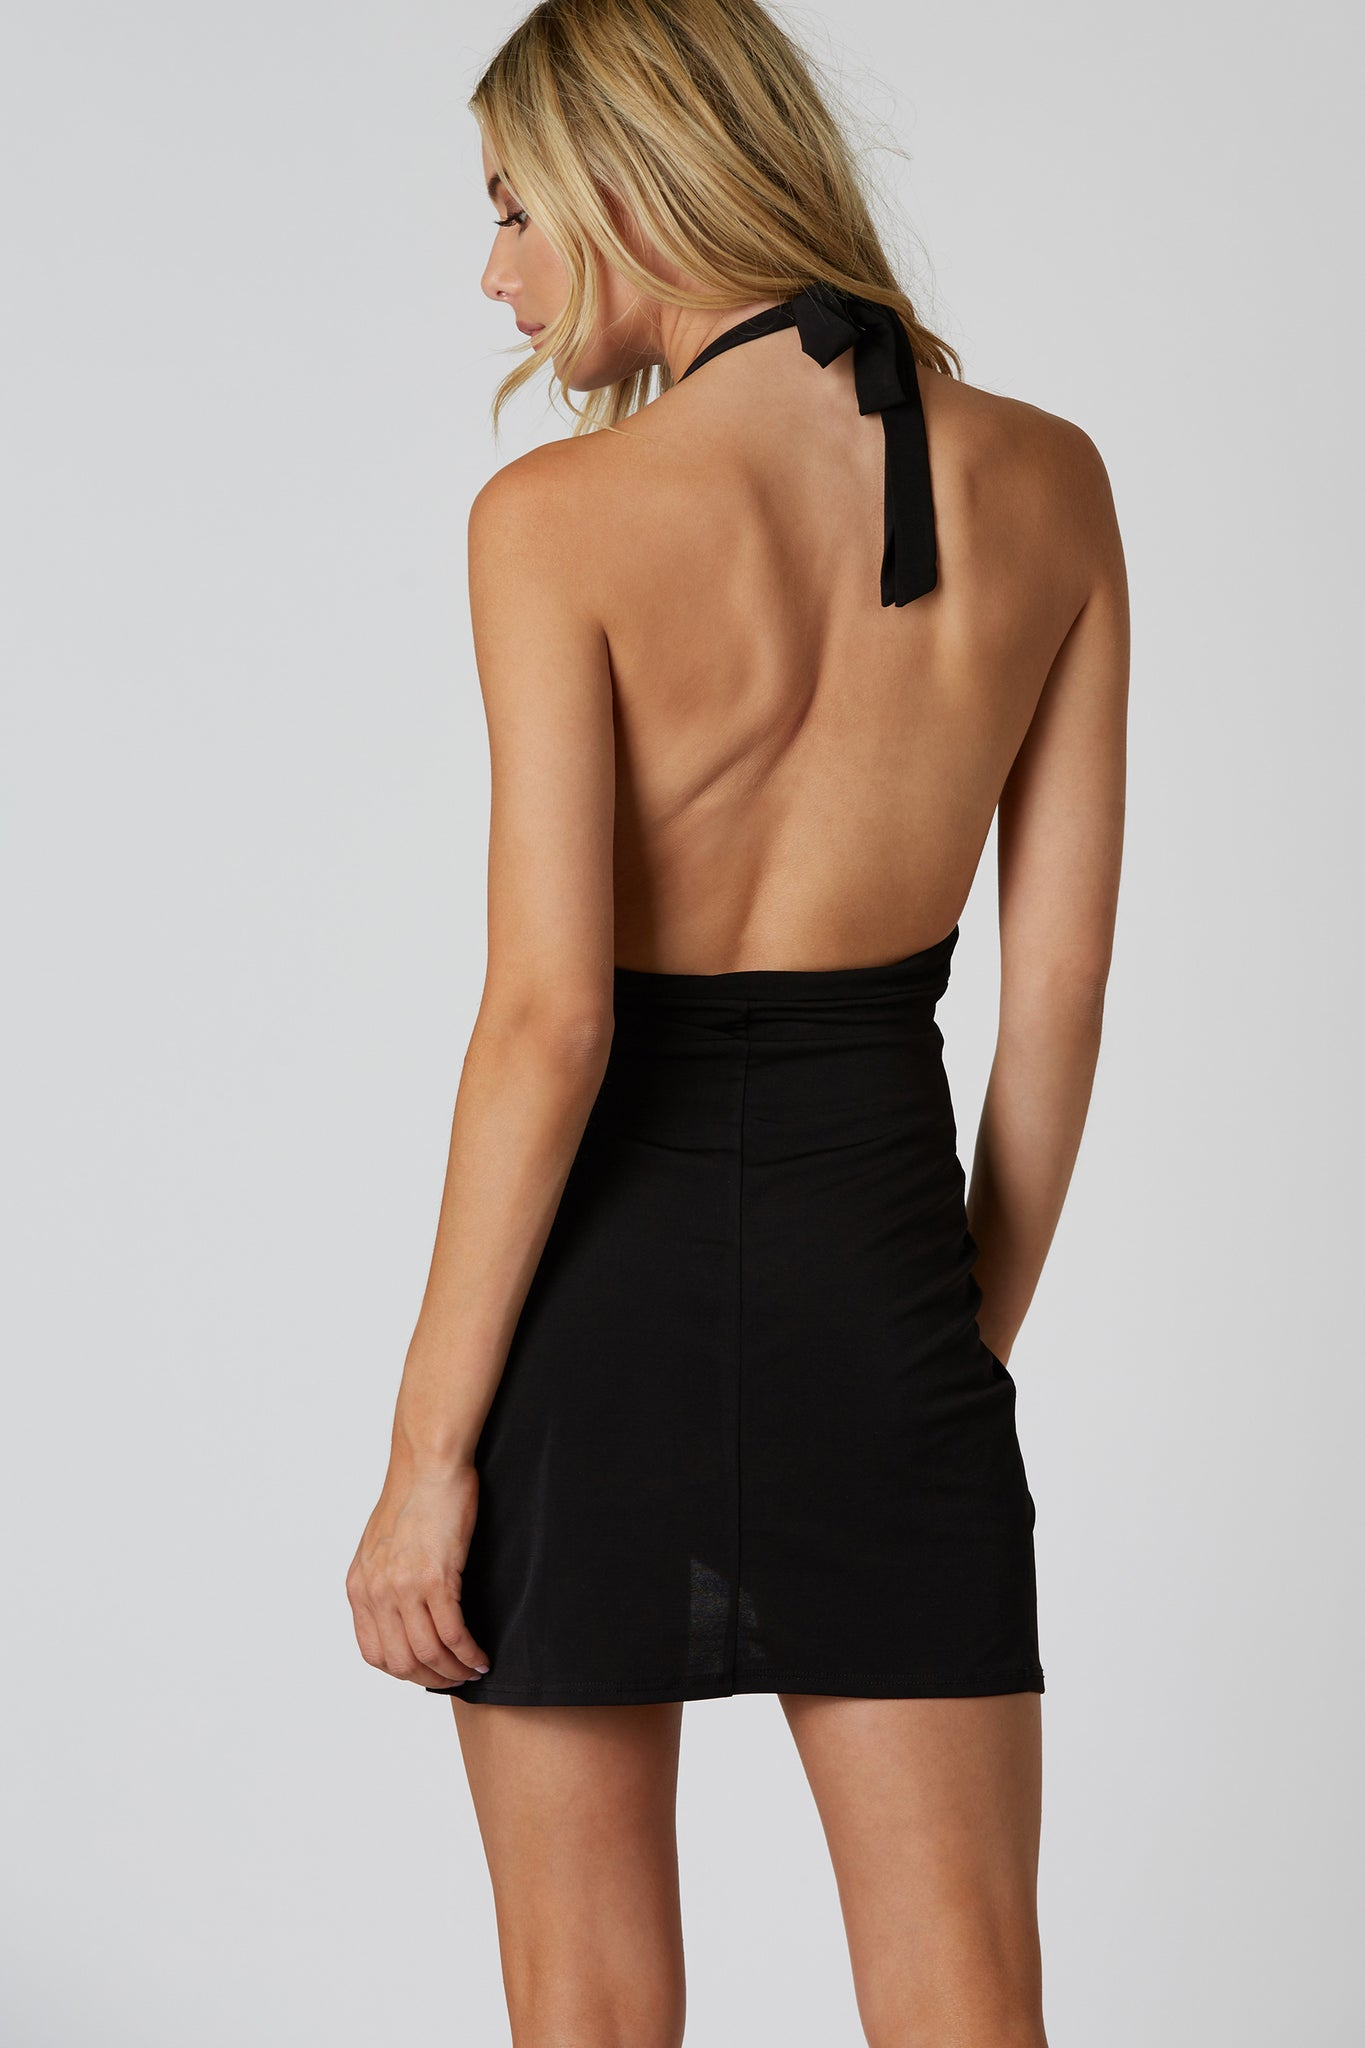 Sleeveless halter mini dress made of smooth slinky material. Classic V-neckline with overlap finish and open back.